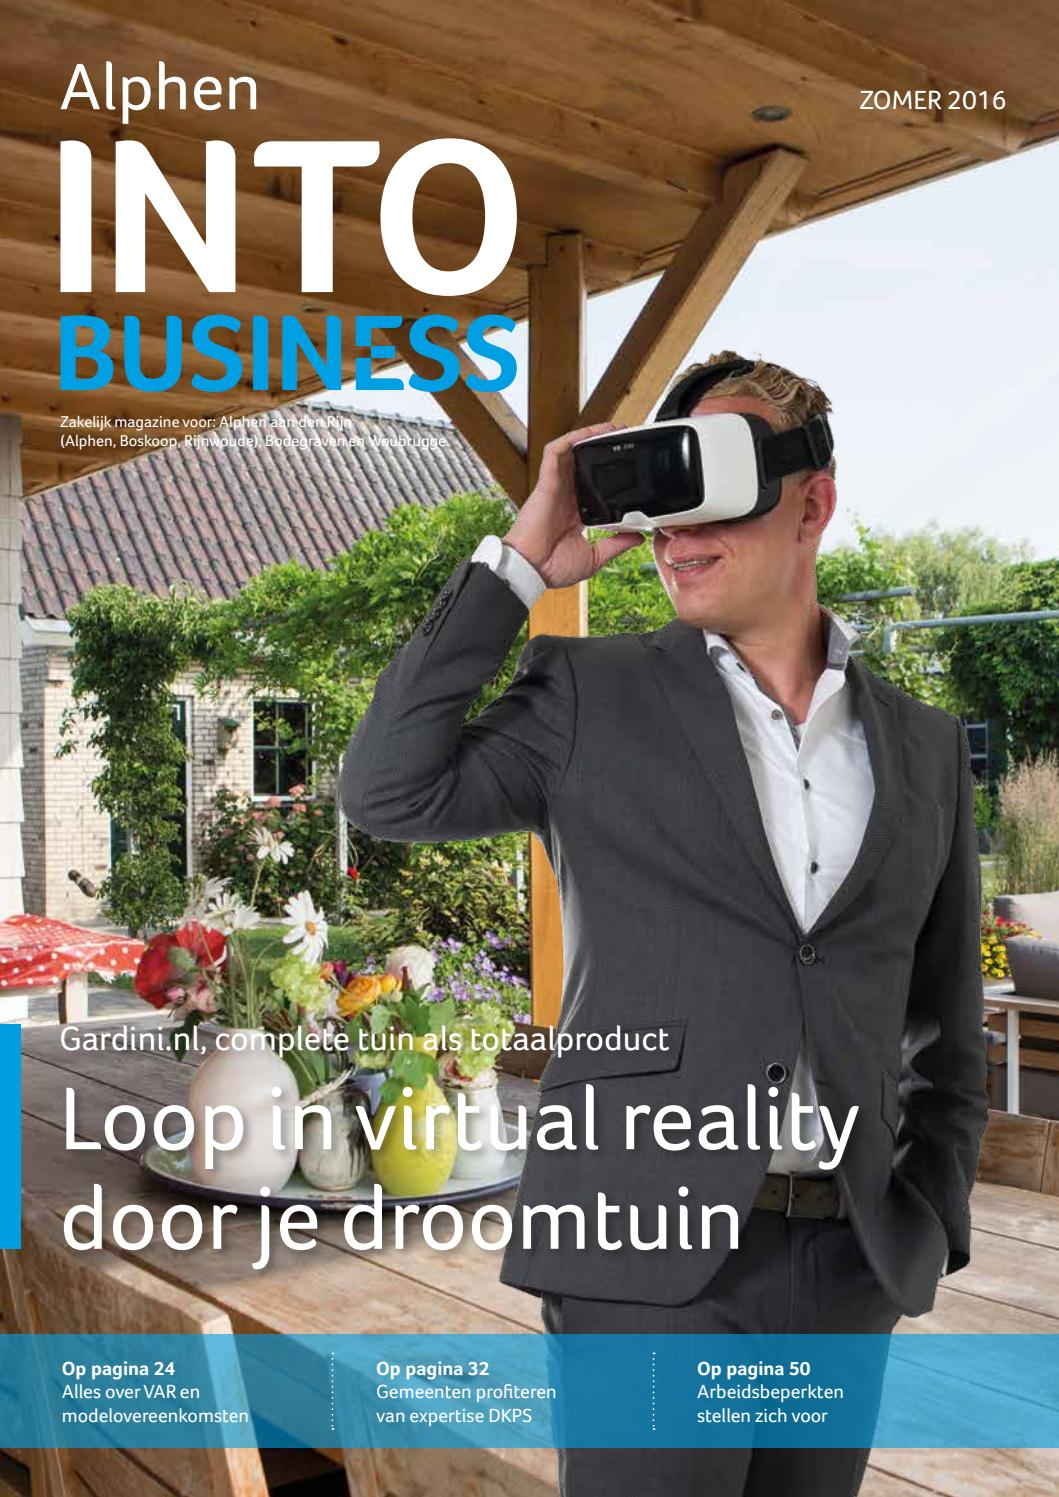 Gouda sept 2012 by into business   issuu